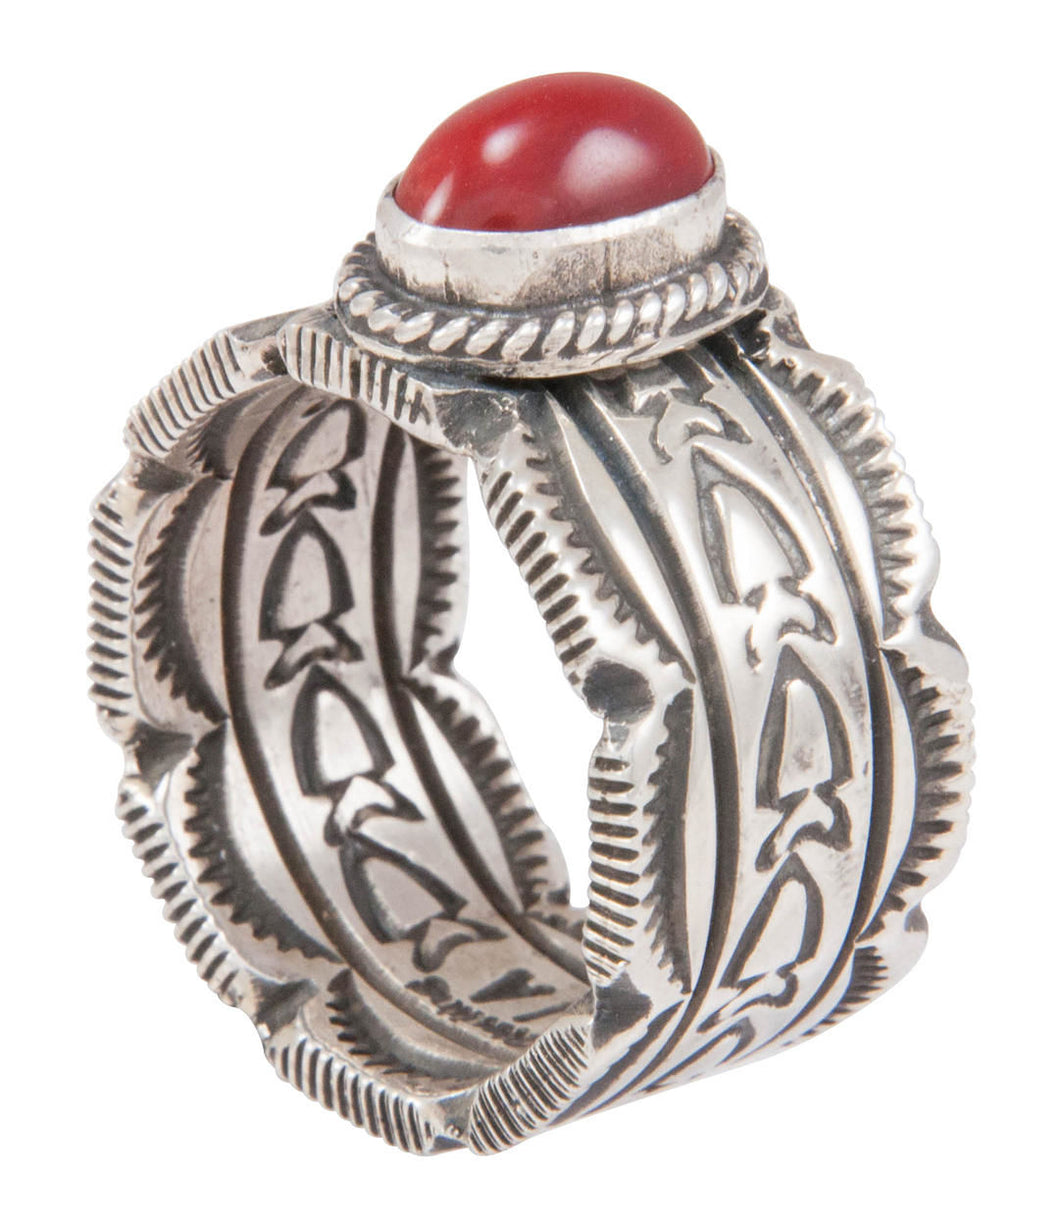 Navajo Native American Red Jasper Ring Size 10 1/2 by Joe Allen SKU230779